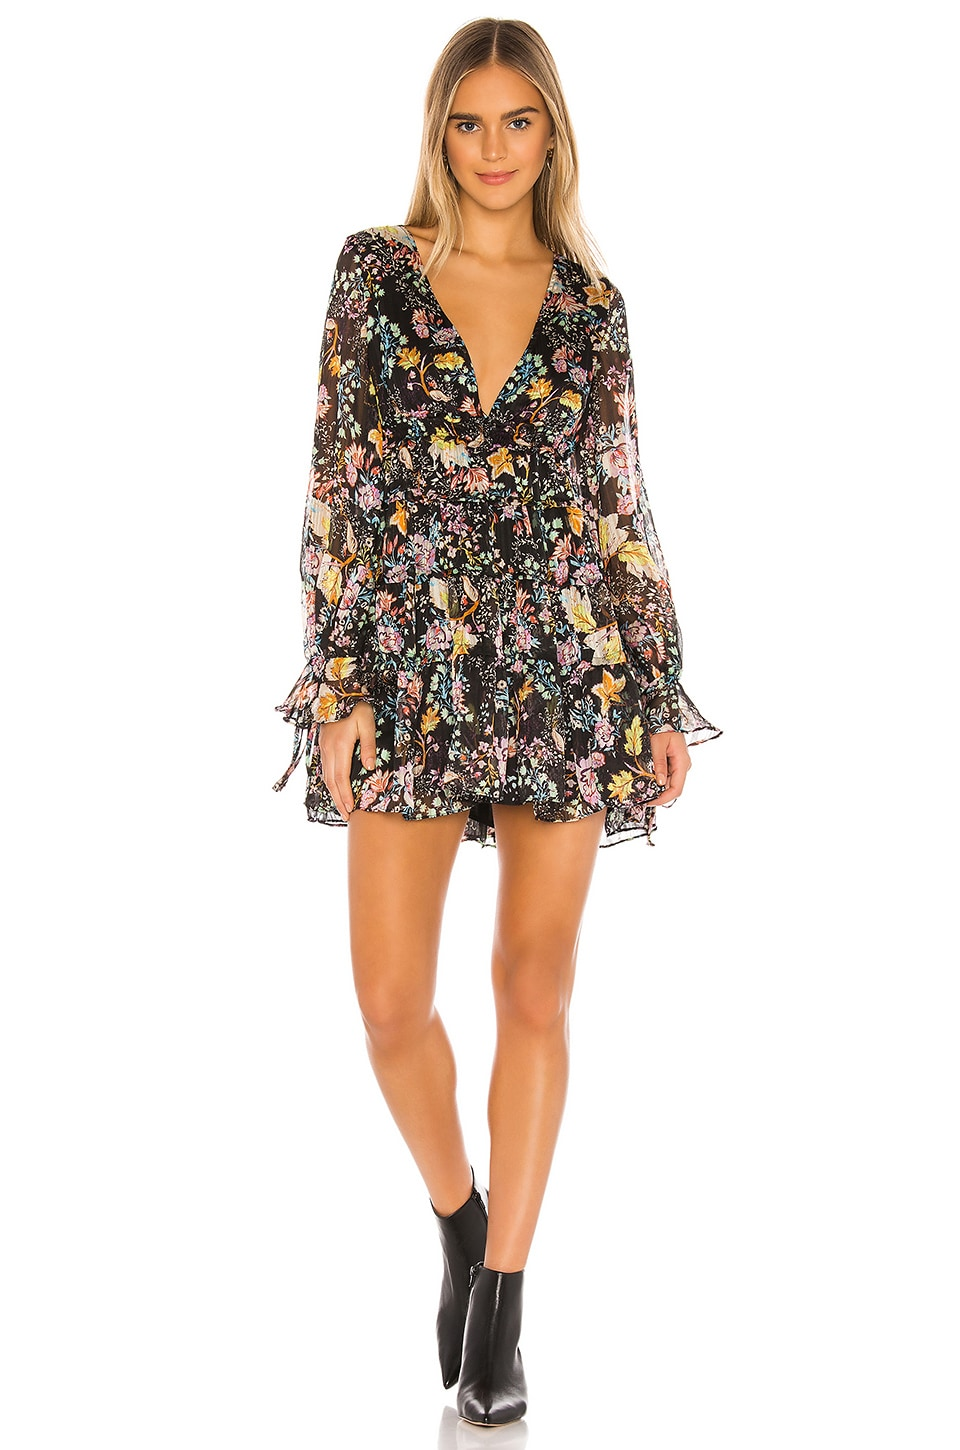 Free People Closeer To The Heart Mini Dress in Black